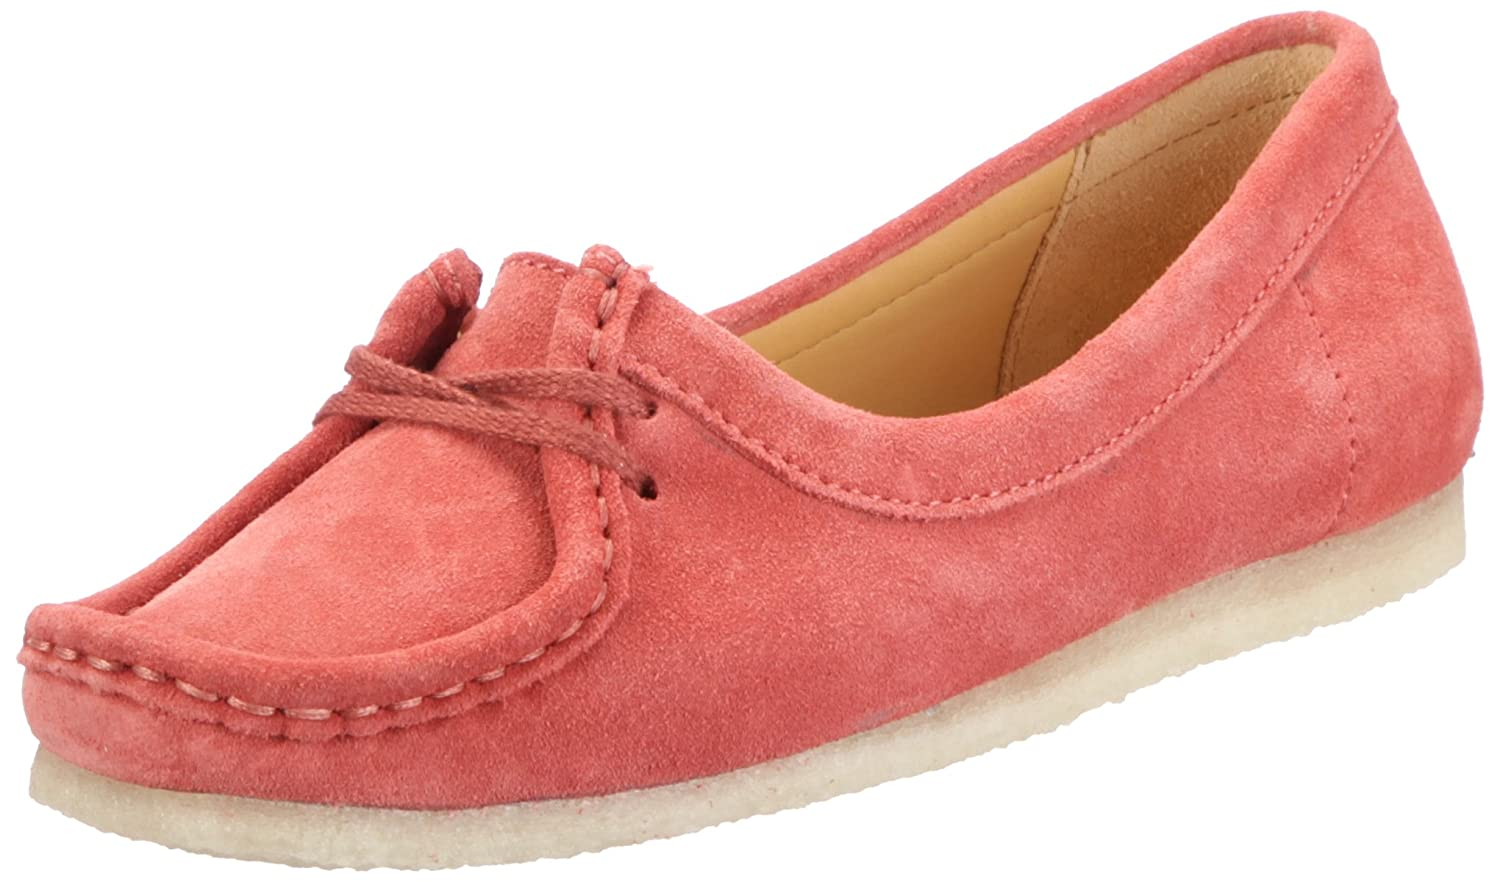 Clarks Wallabee Chic 20350118, Damen Mokassins, Rot (Blush